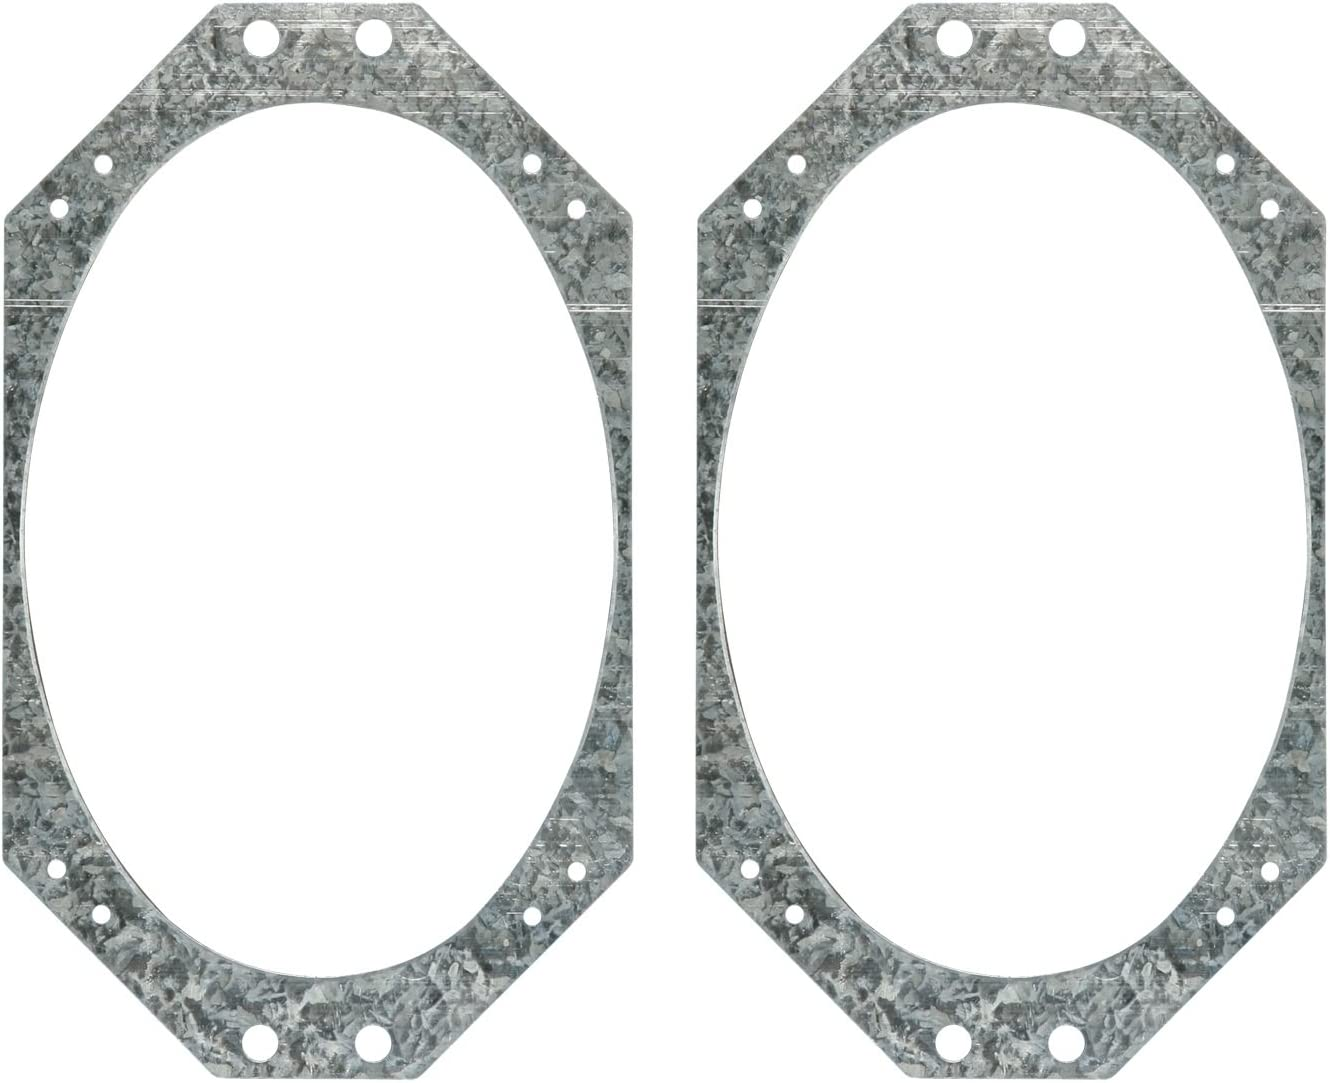 Metra 82-6600 5-1//4 or 6-1//2-Inch Front Door Speaker Adapter for Select 1995-up Chrysler//Dodge//Jeep Vehicles Metra Electronics Corp